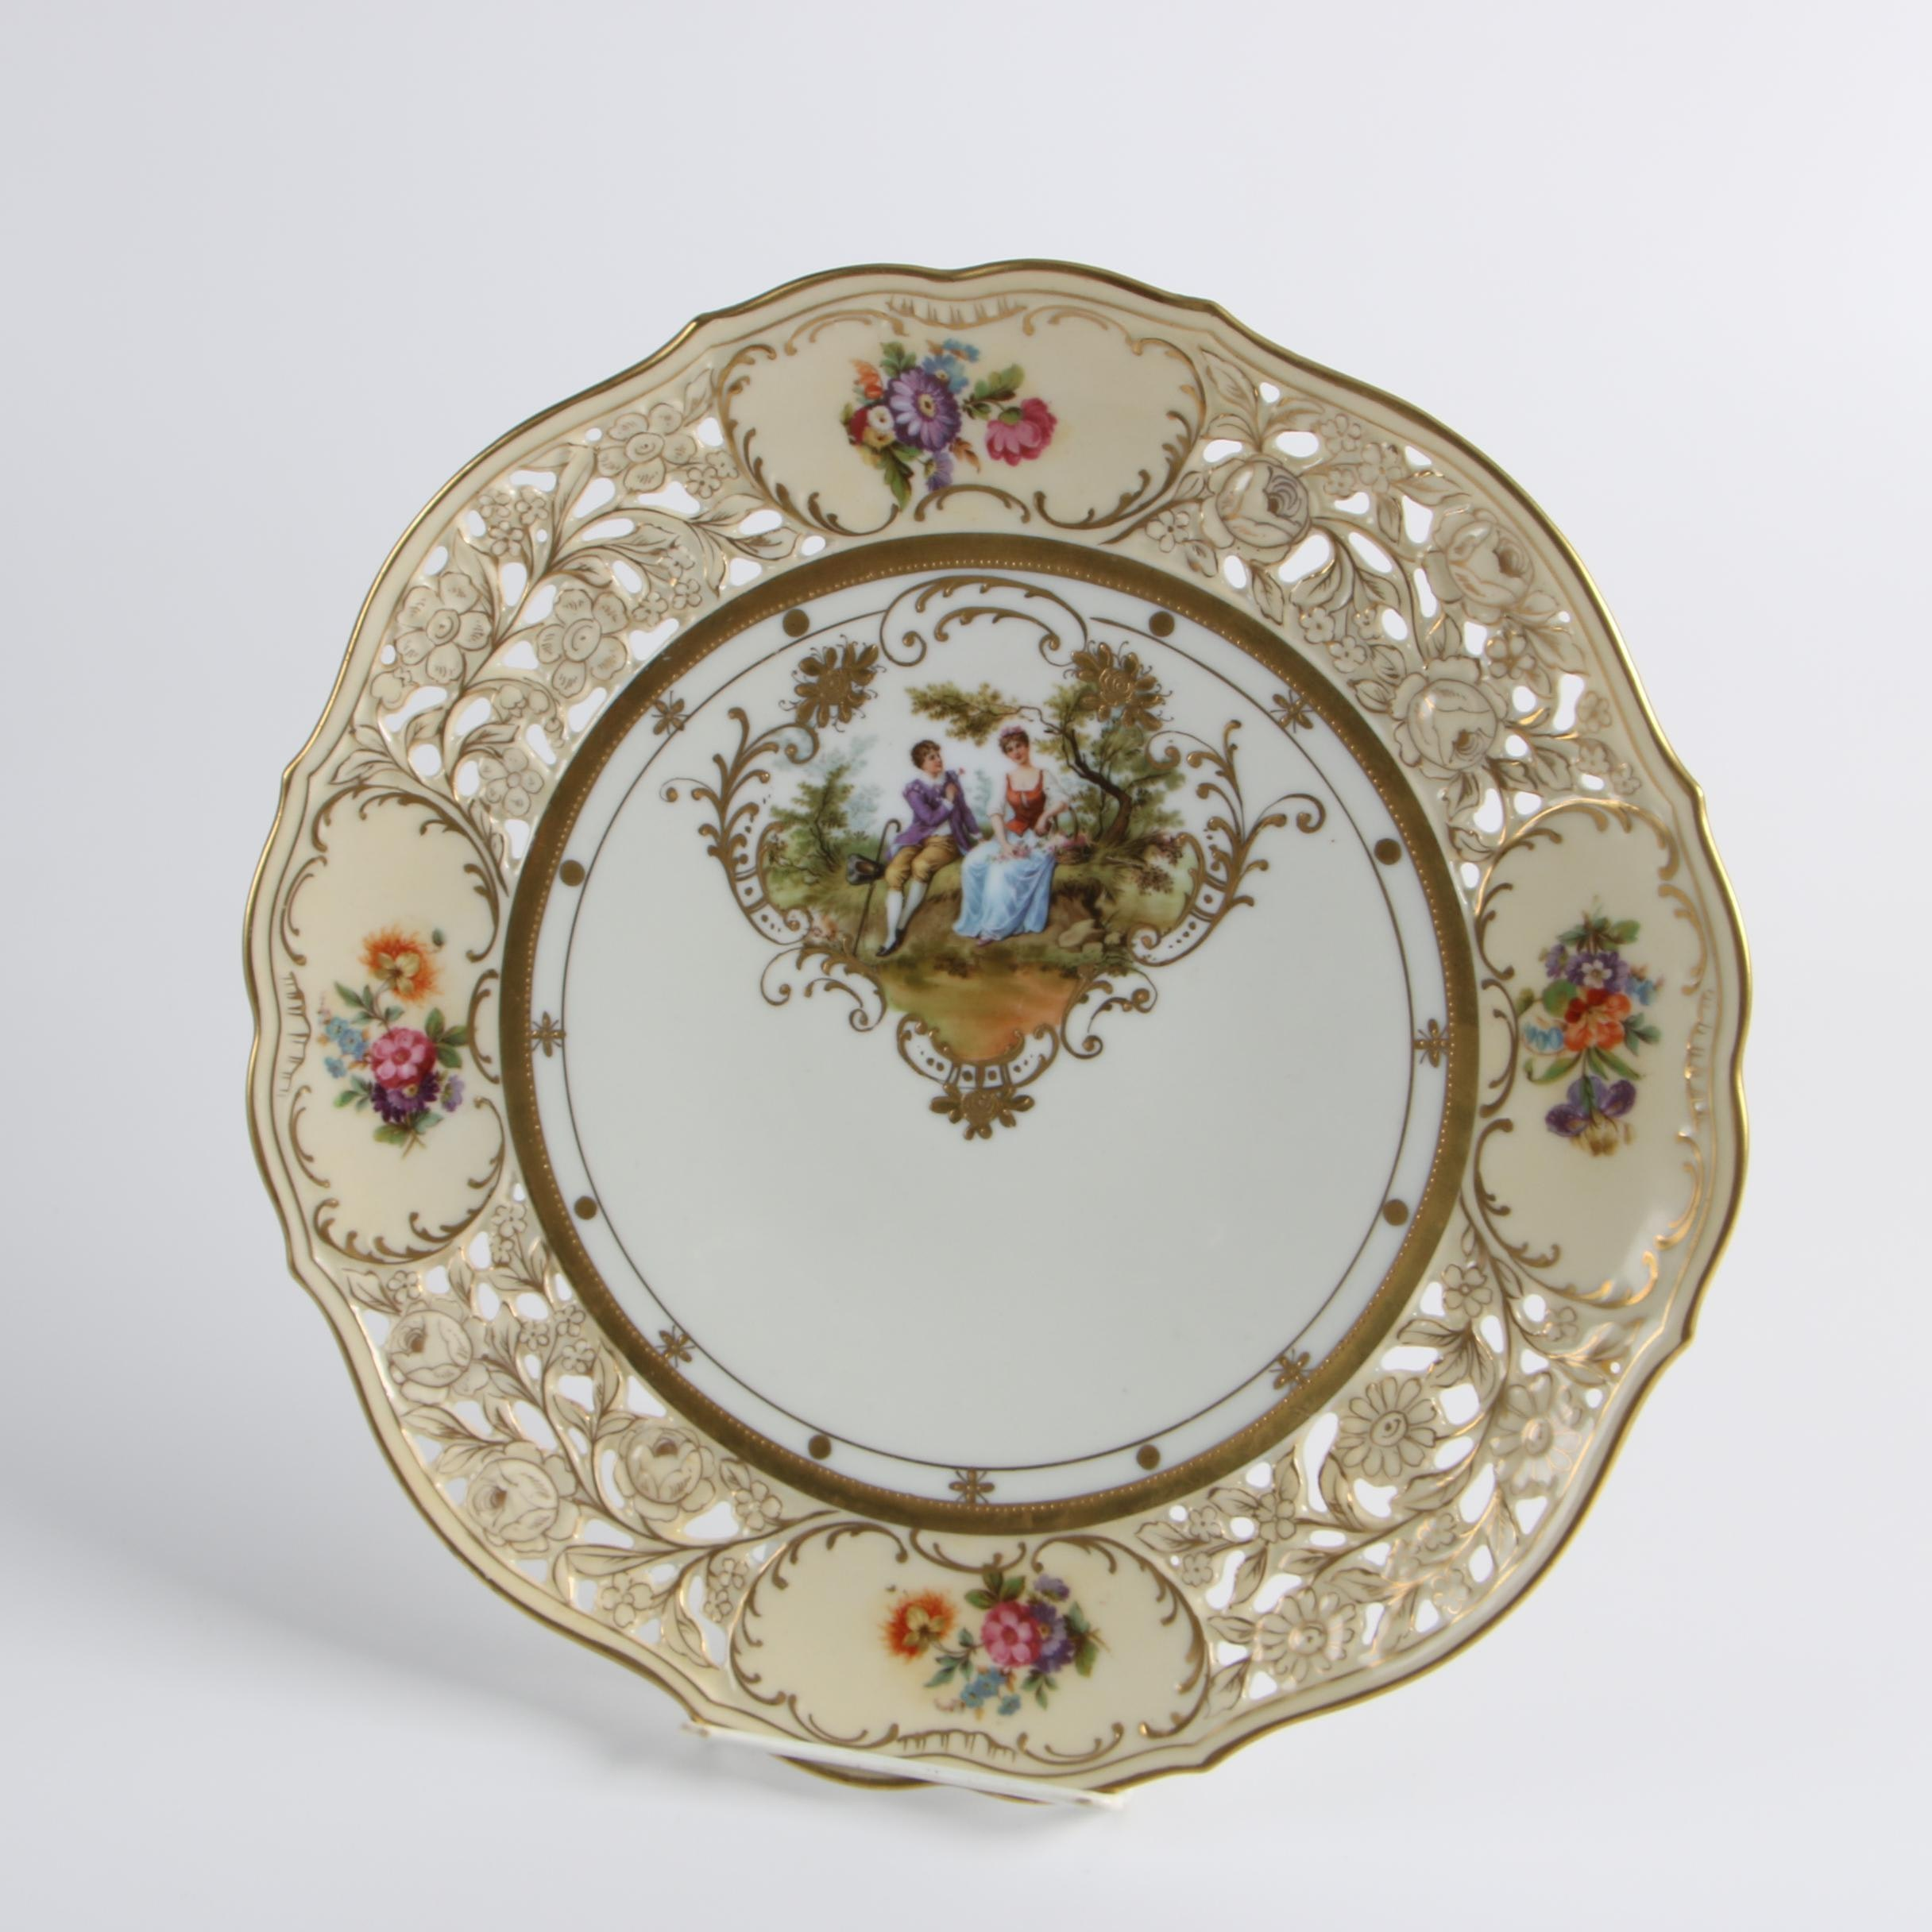 Antique German Pierced Porcelain Cabinet Plate with Courting Scene